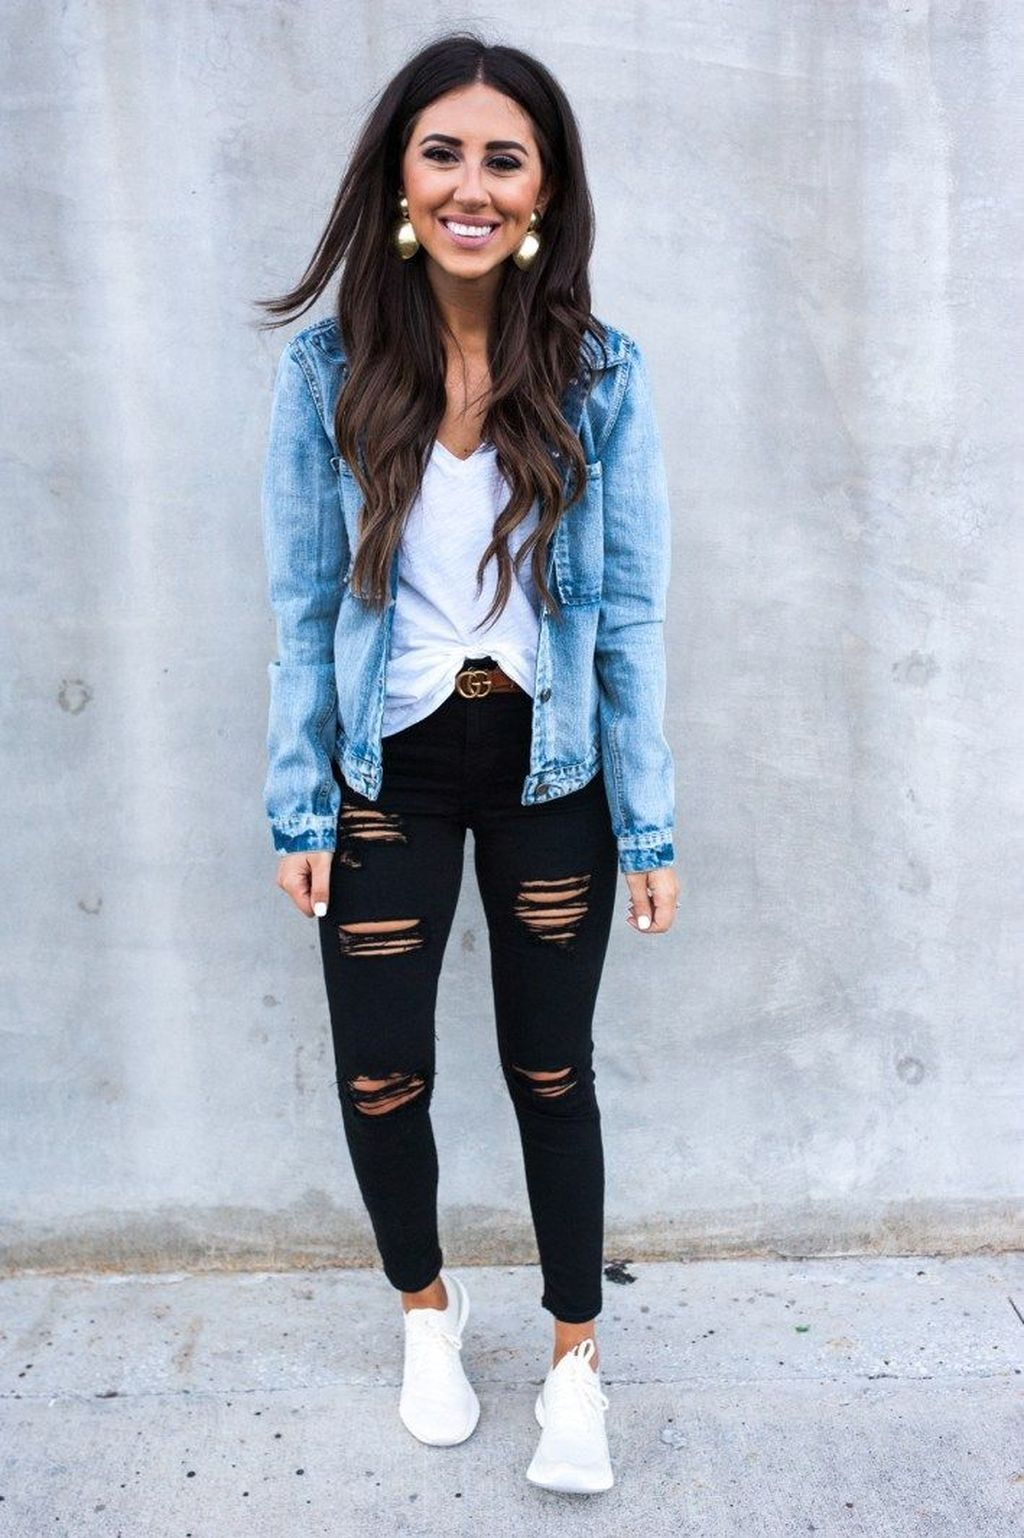 53 Excellent Outfits Ideas With Black Style